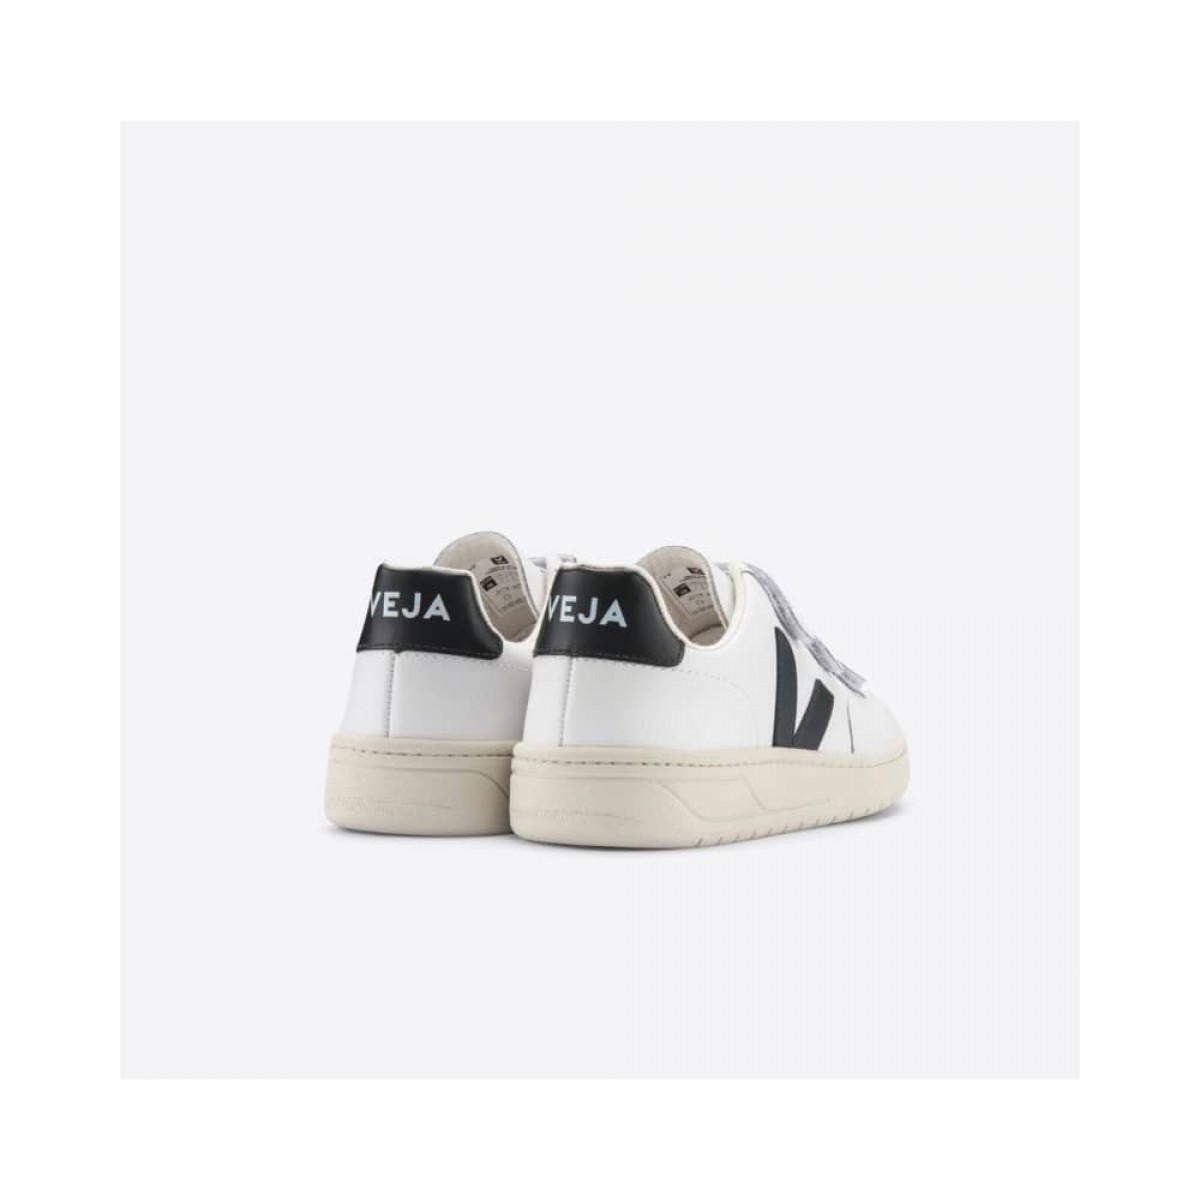 v-lock leather - extra white with black - bagfra